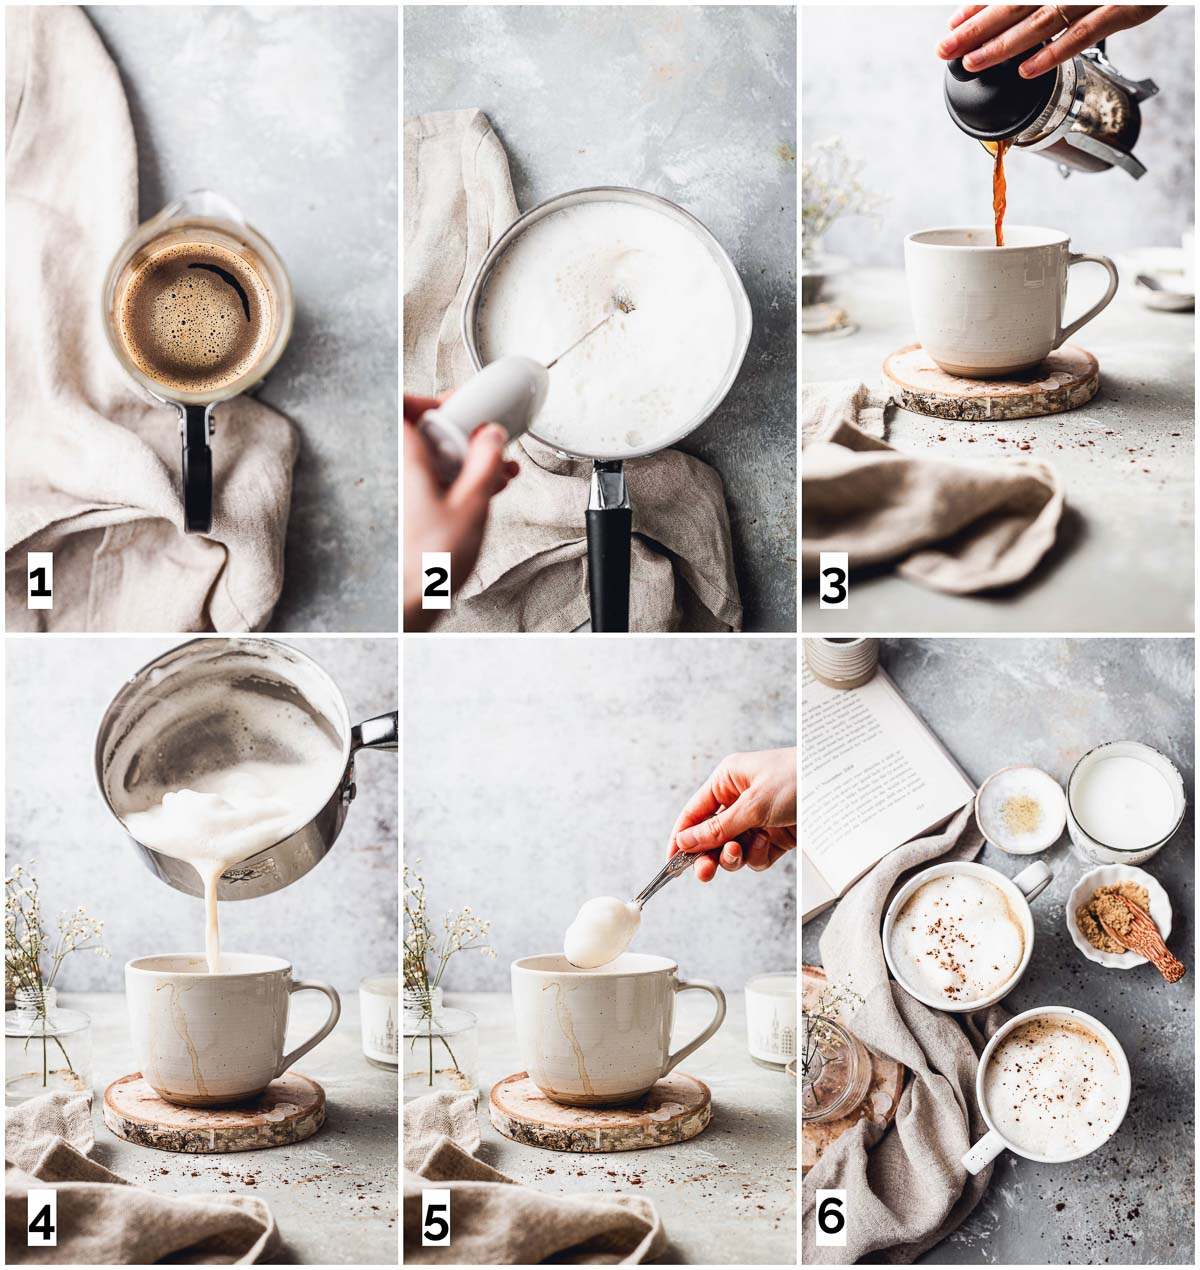 A collage of six images showing different steps in making a vegan latte.